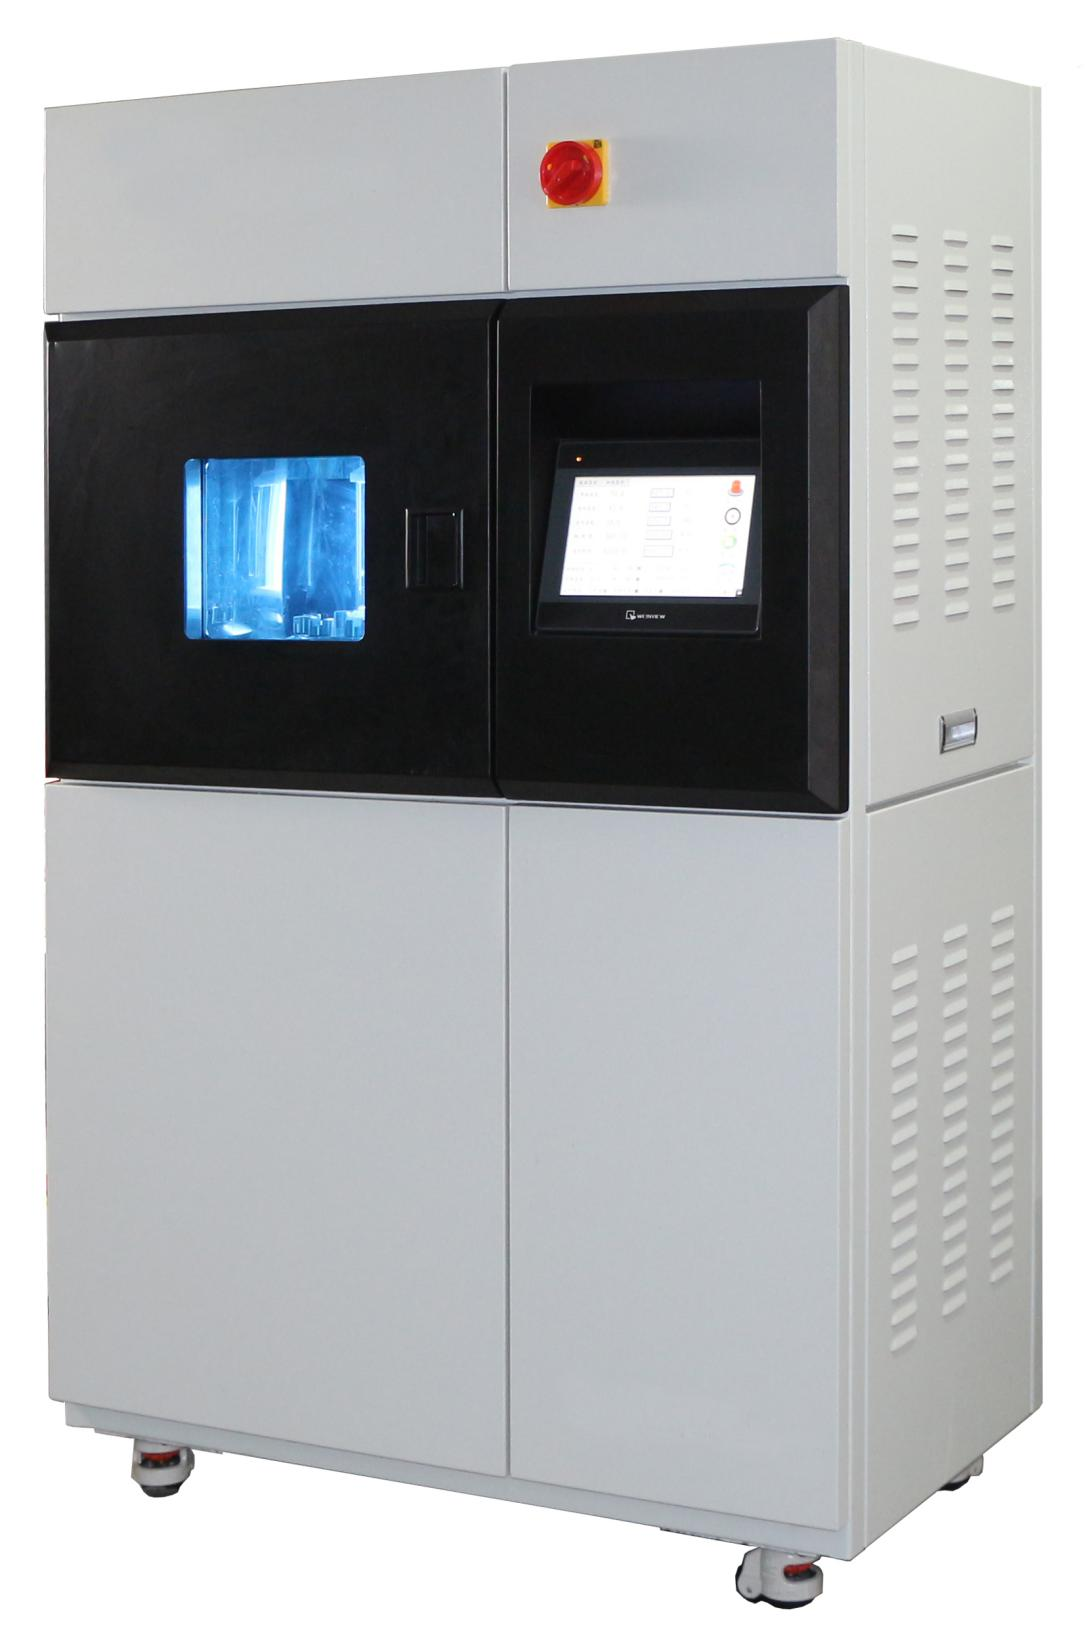 EQUIPMENT DETAILS FOR AIR COOLED LIGHT FASTNESS TESTER